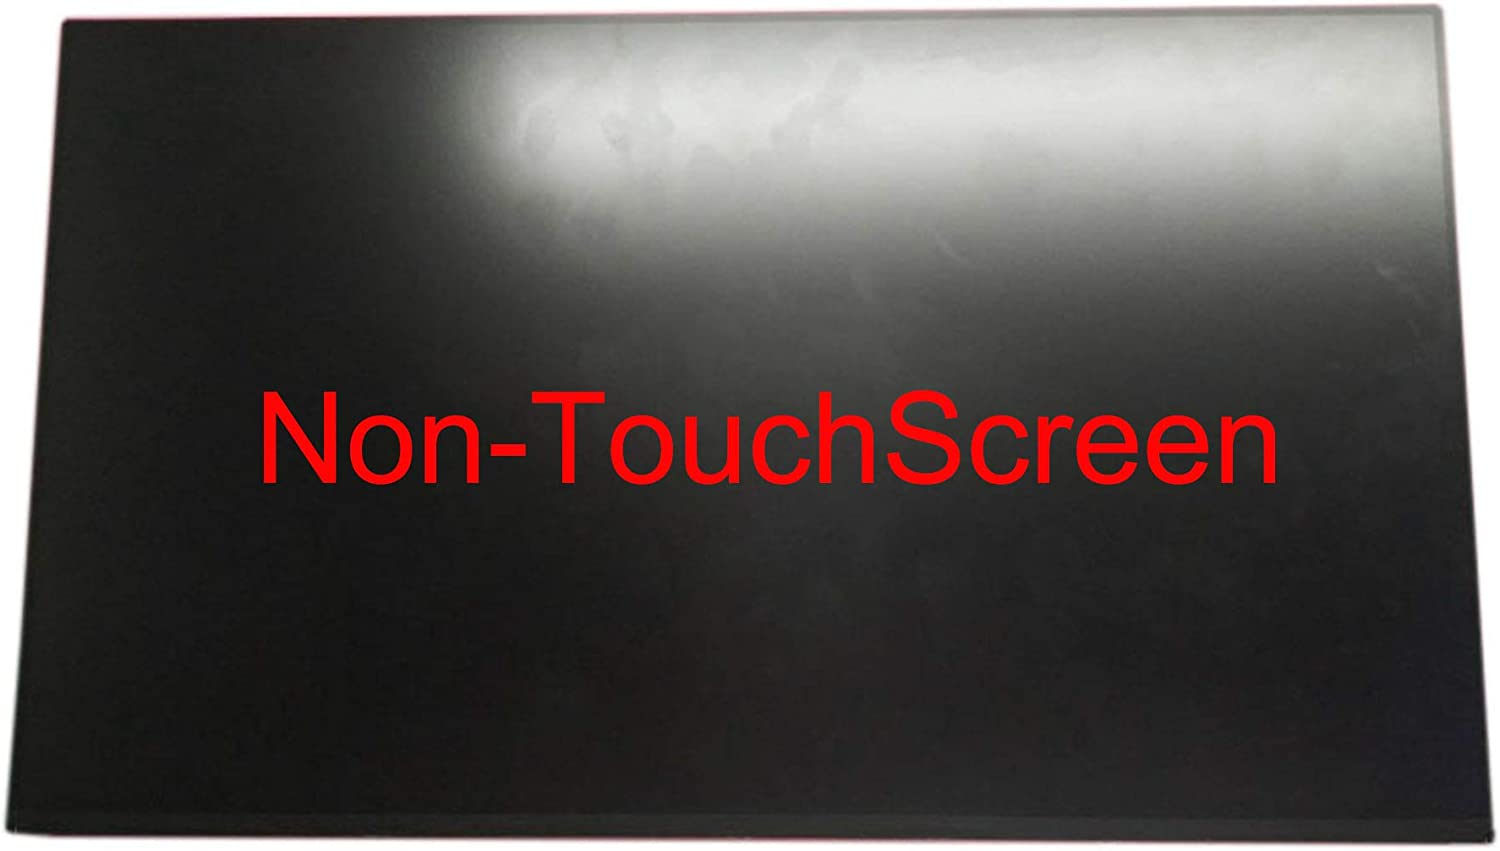 23.8-Inch LCD Display Panel 801615-001 Full HD 1920x1080 for HP AIO PC (Non-Touchscreen) (Compatible Model Will be Sent)